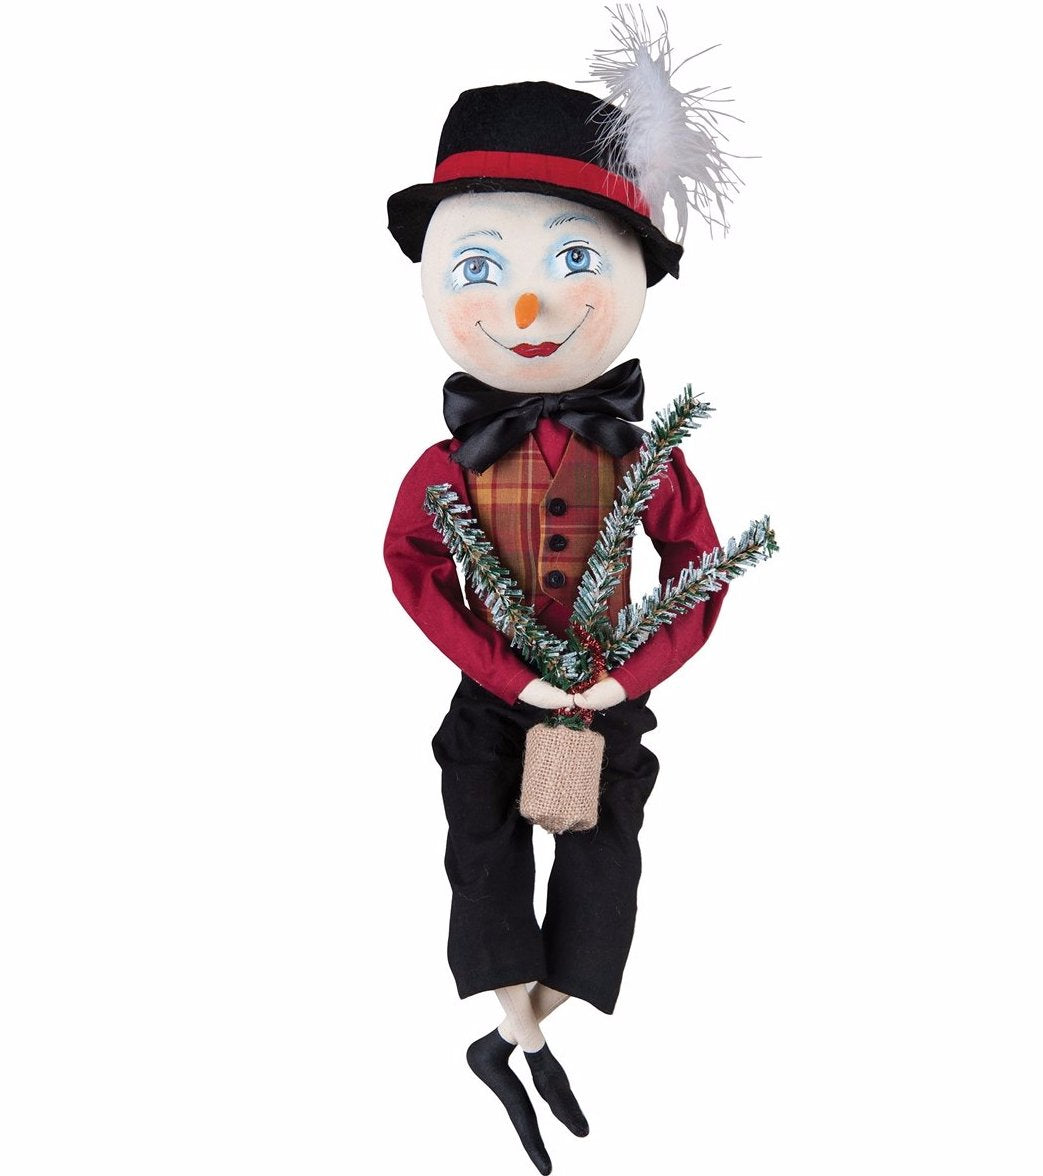 Joe Spencer Stanley Snowman Doll